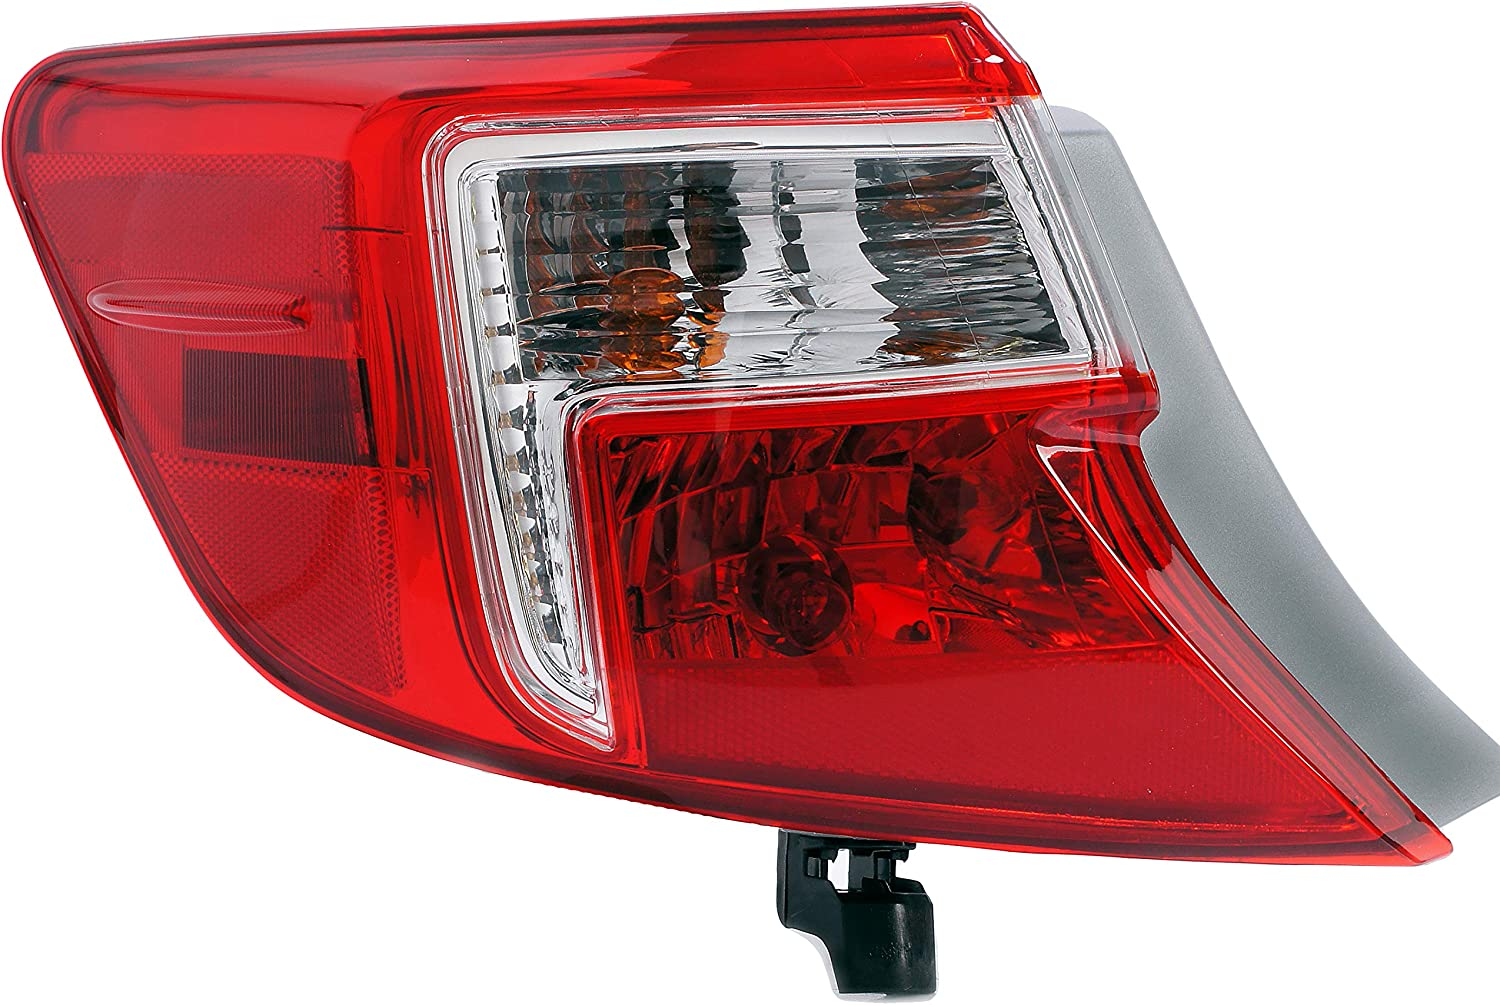 Dorman 1571446 Driver Side Tail Light Assembly for Select Toyota Models